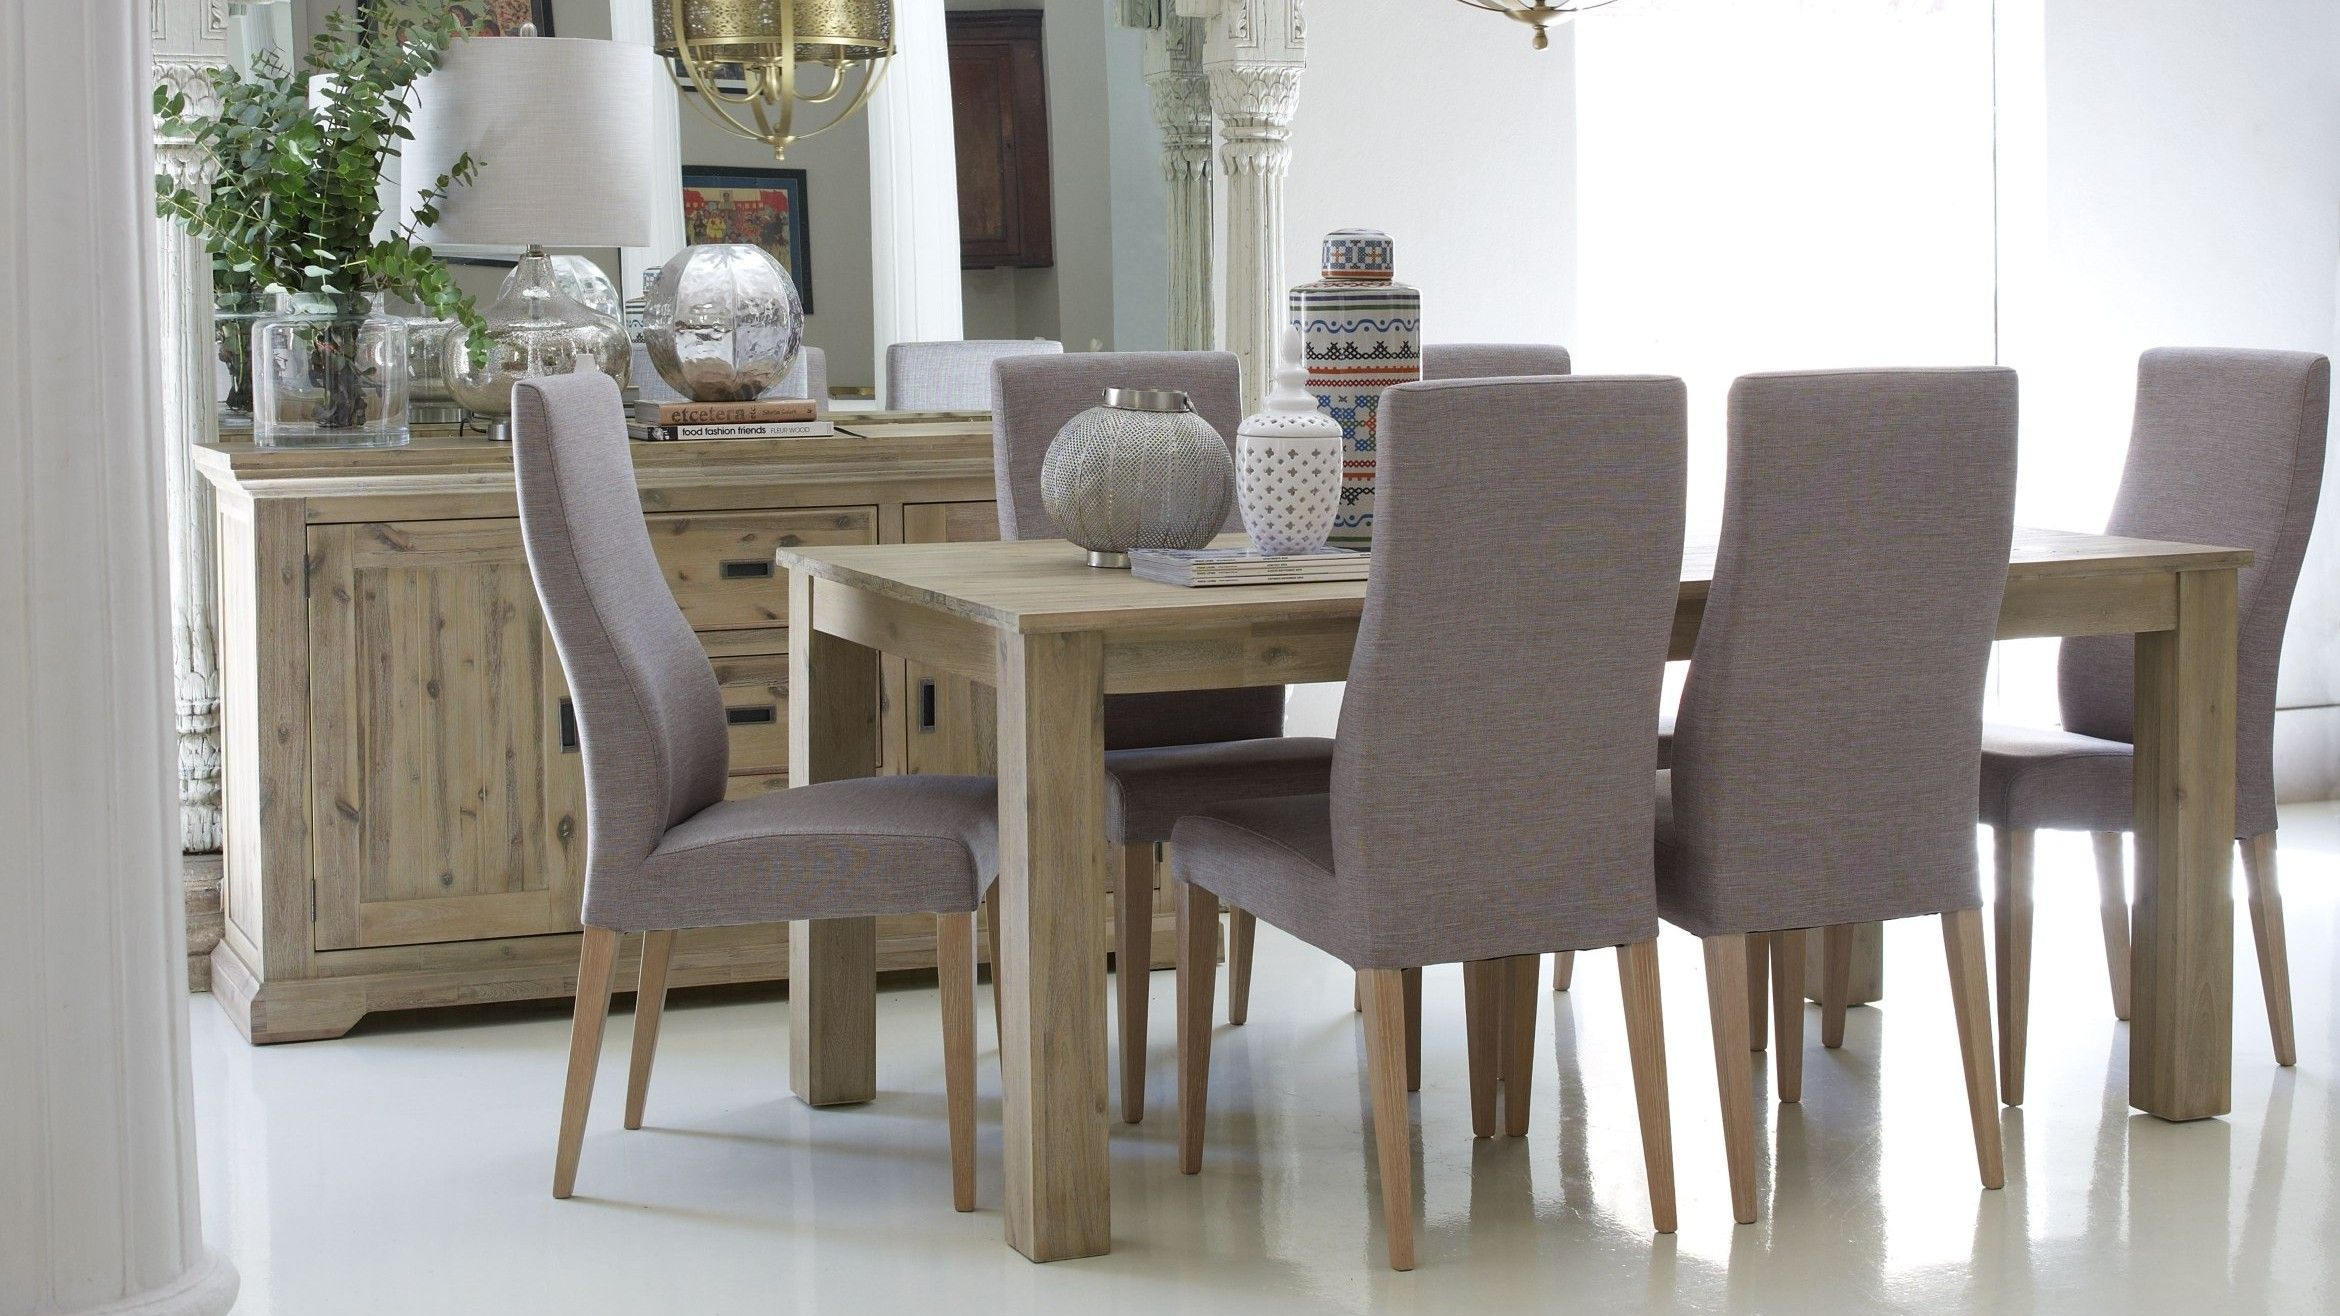 derwent 9 piece dining setting dining furniture dining room